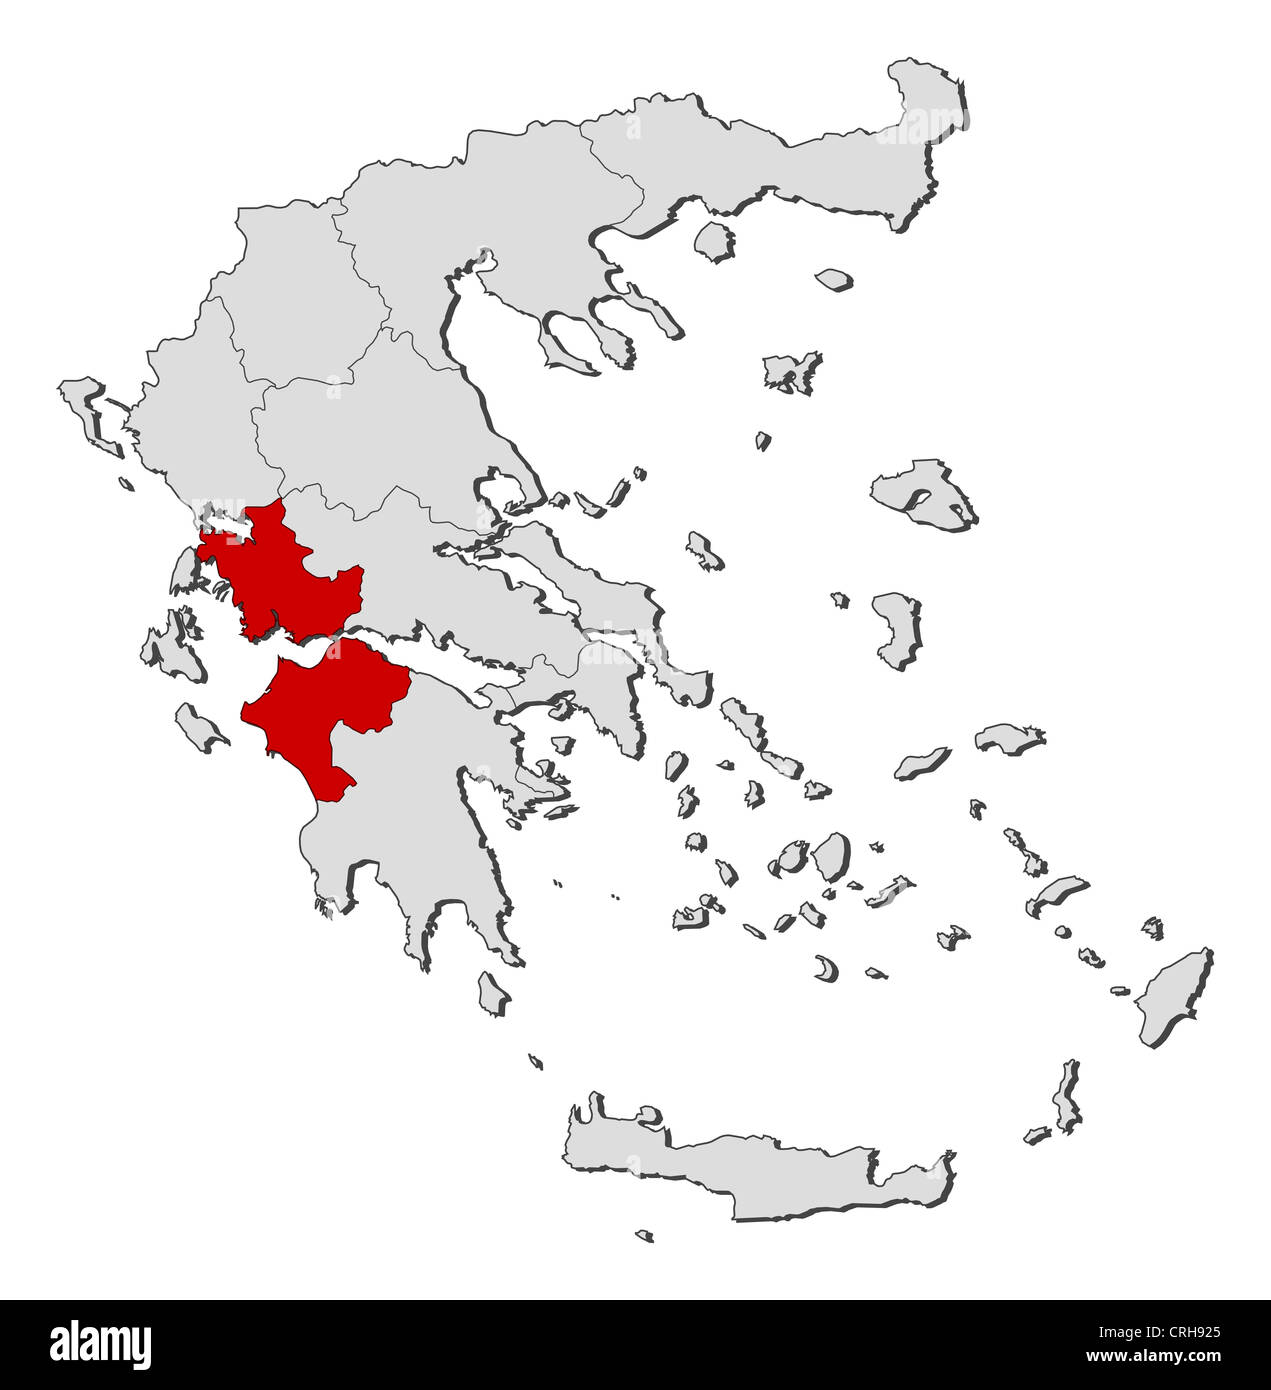 Where Is Greece On World Map.Political Map Of Greece With The Several States Where West Greece Is